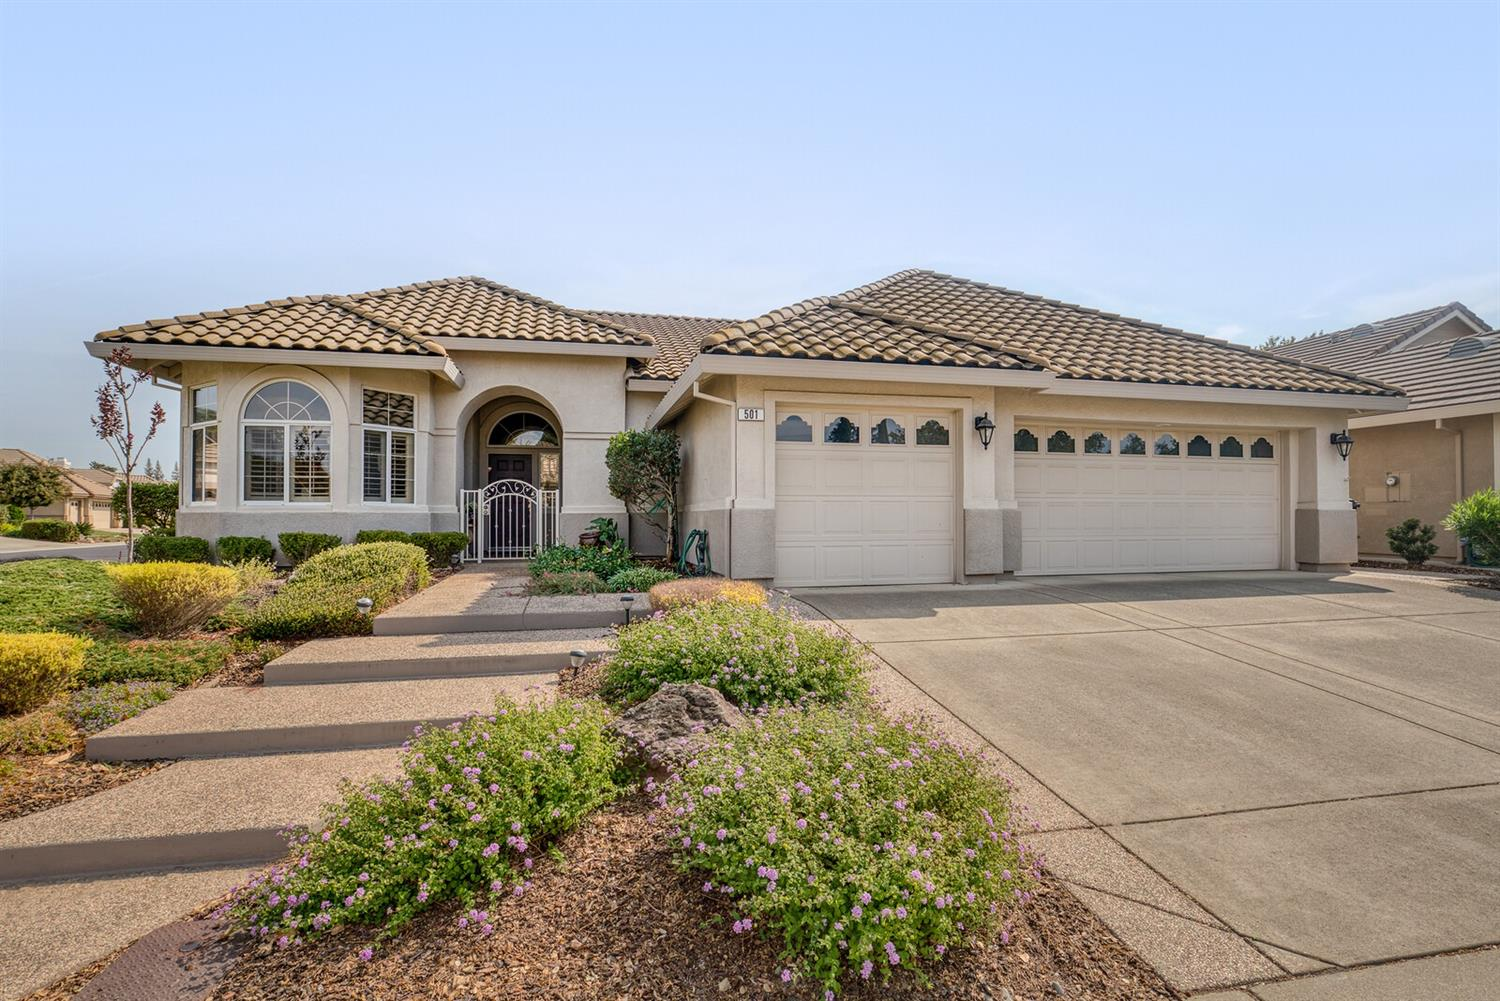 501 Mount Tailac Court, Roseville, CA 95661